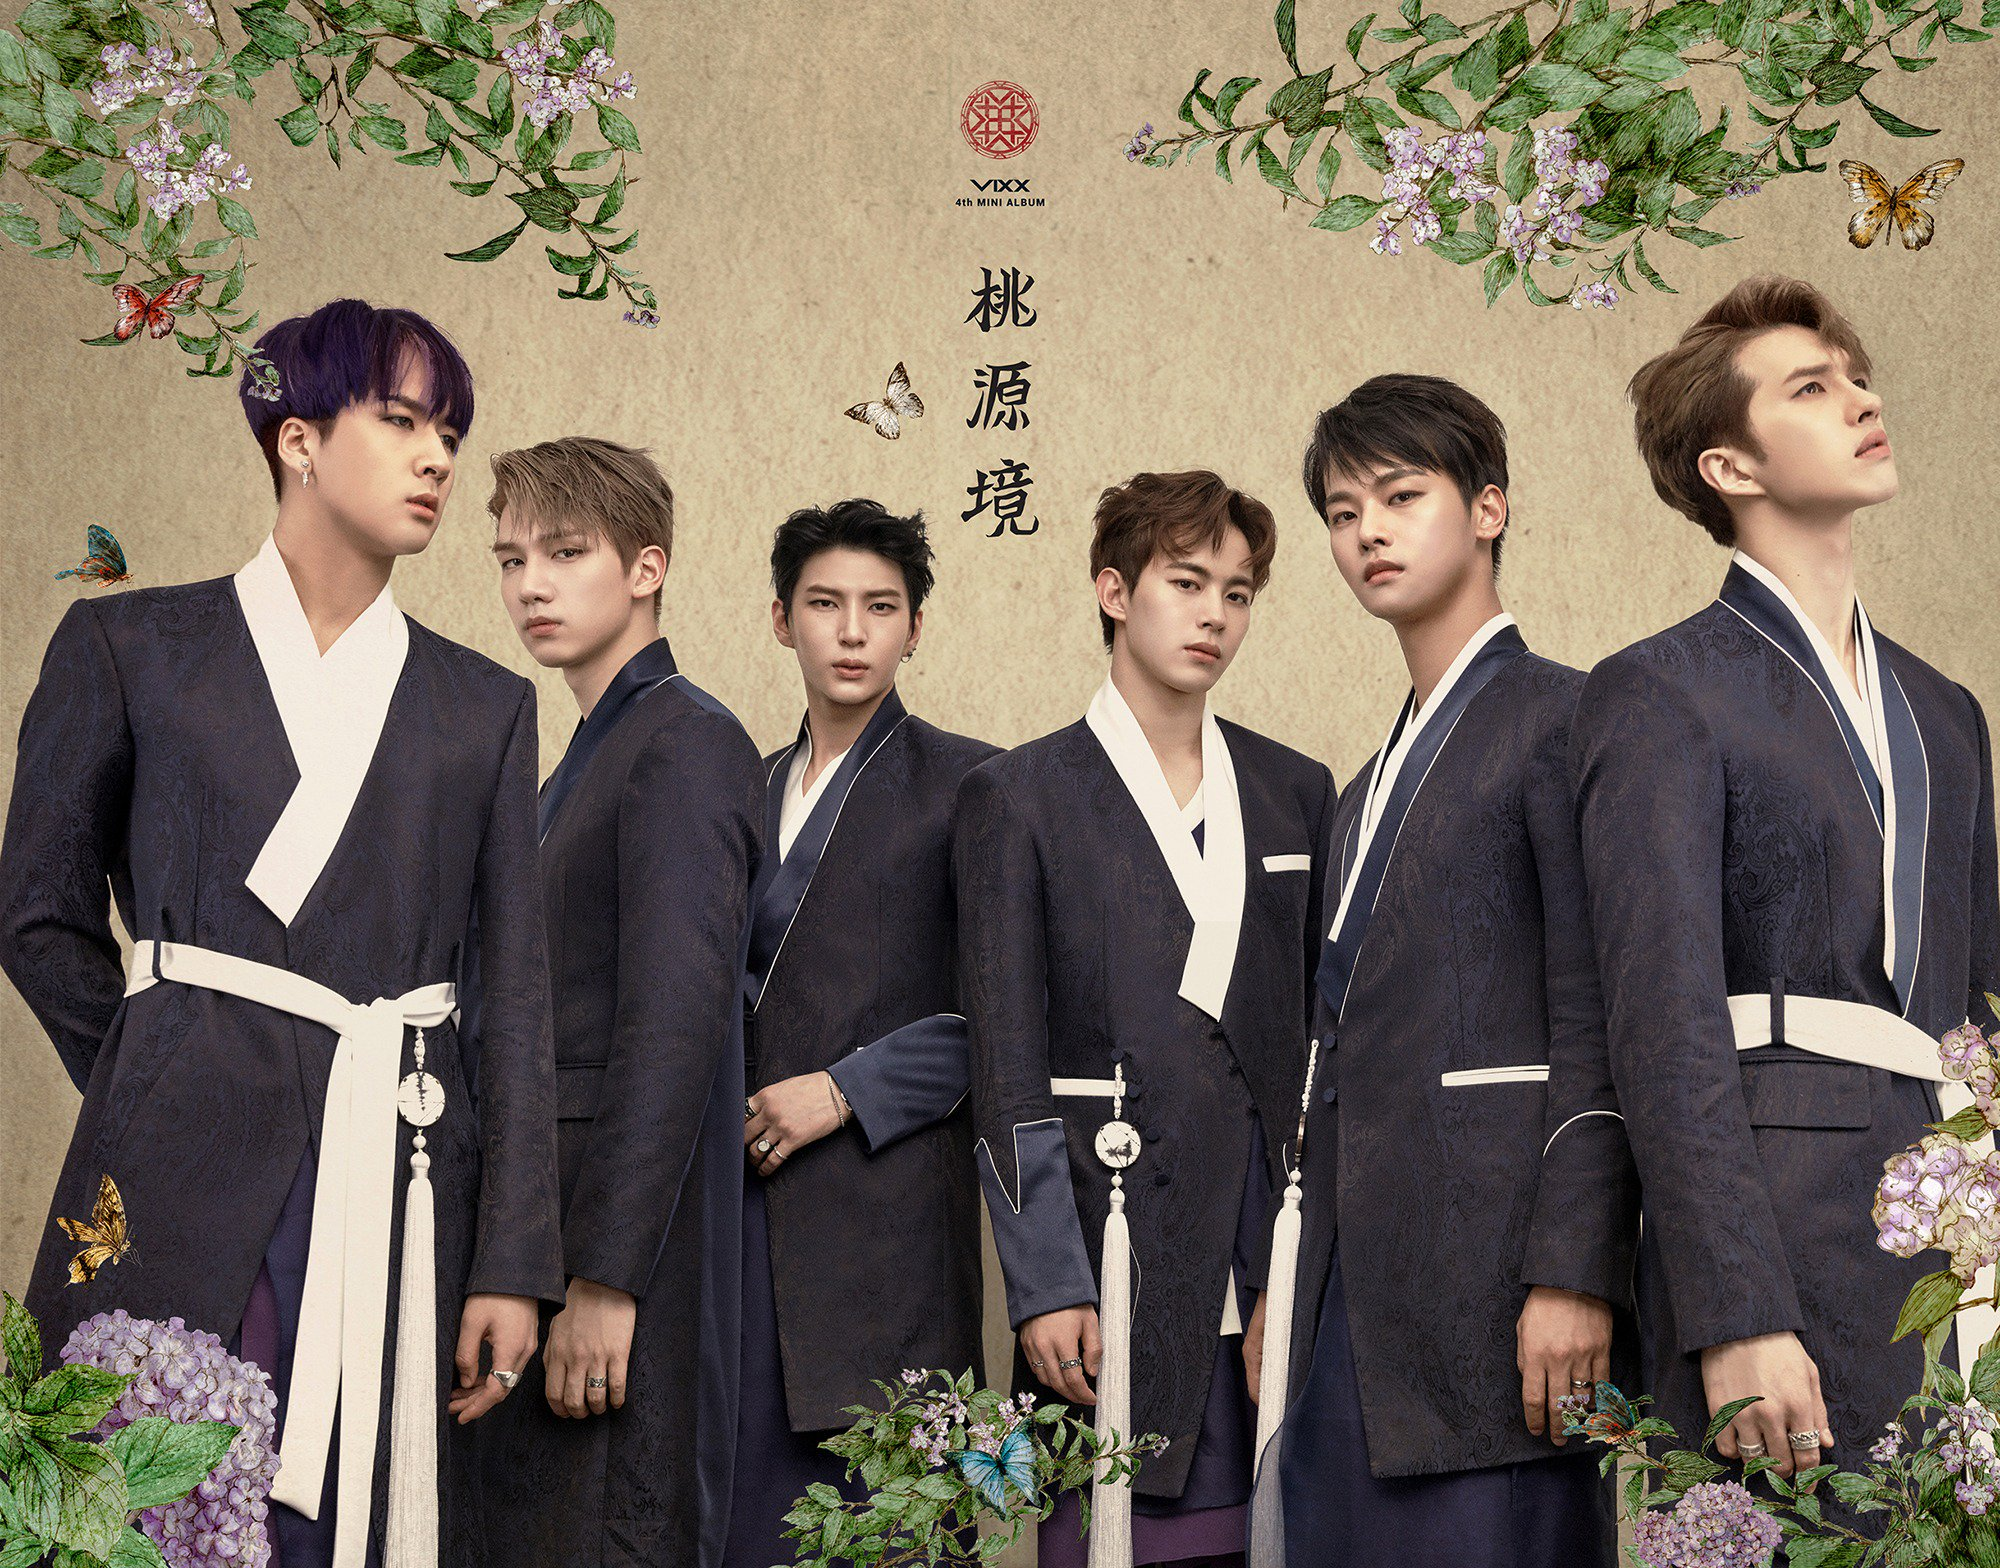 VIXX's List Of Epic Concepts Is Just Getting Longer And Longer